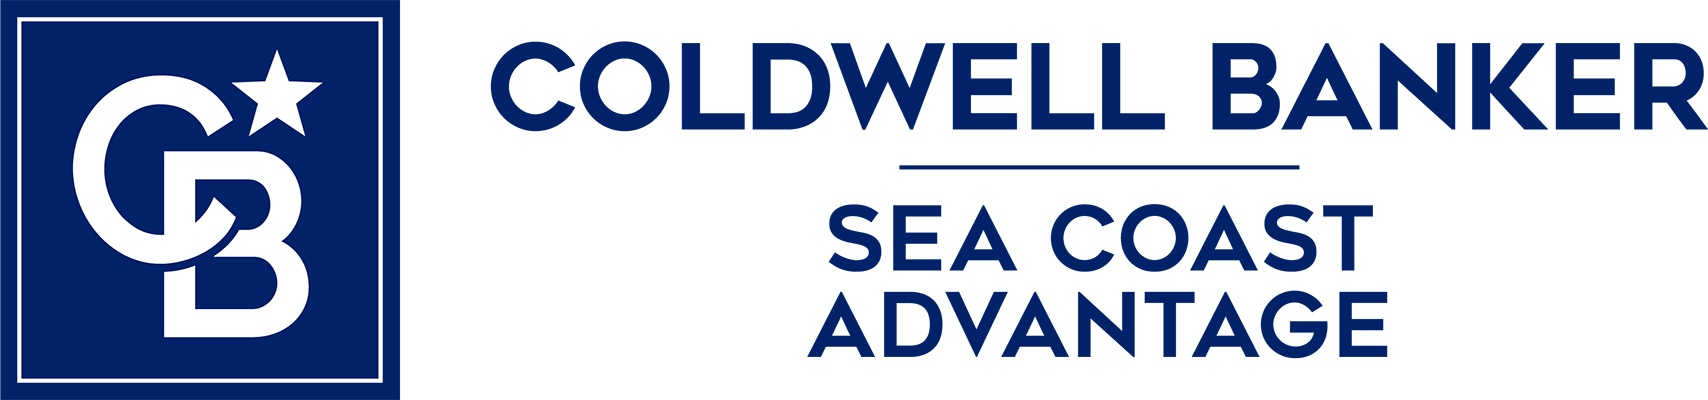 Hannah Tew - Coldwell Banker Sea Coast Advantage Realty